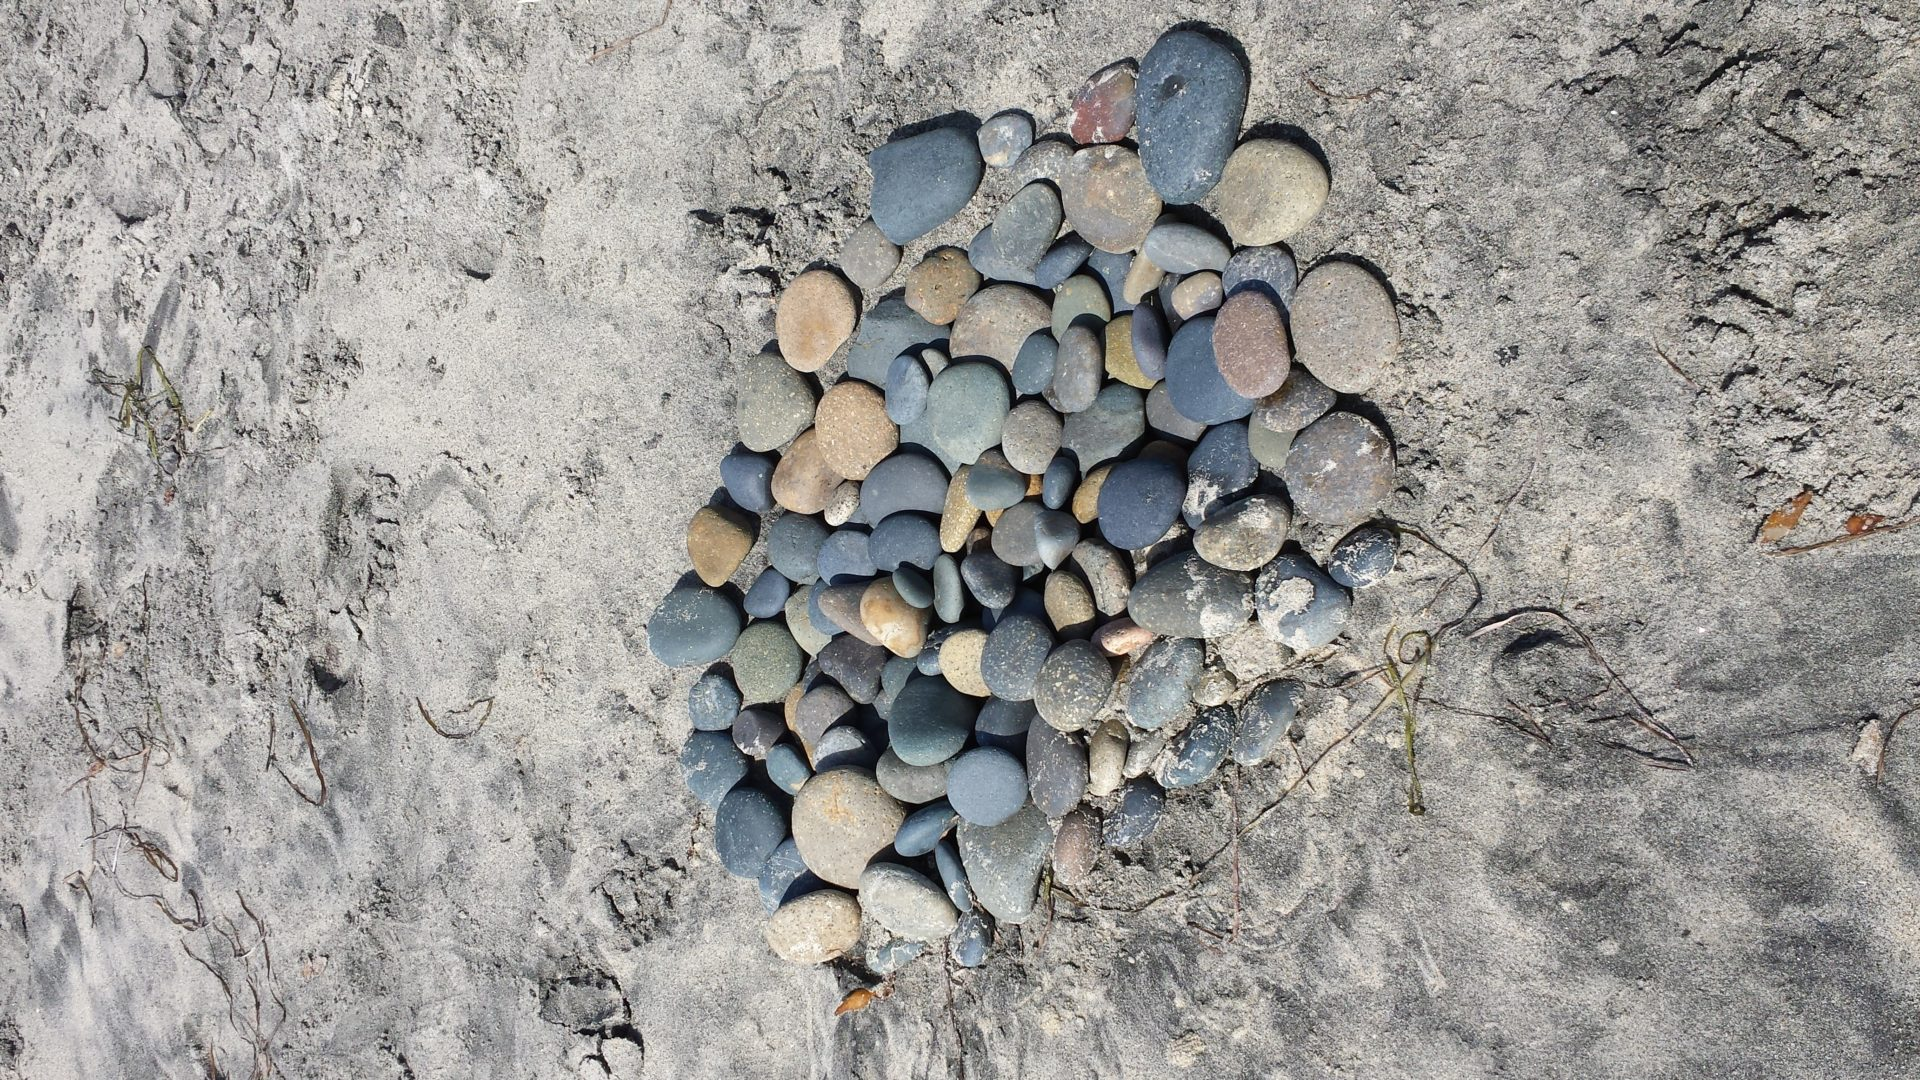 Just some stones